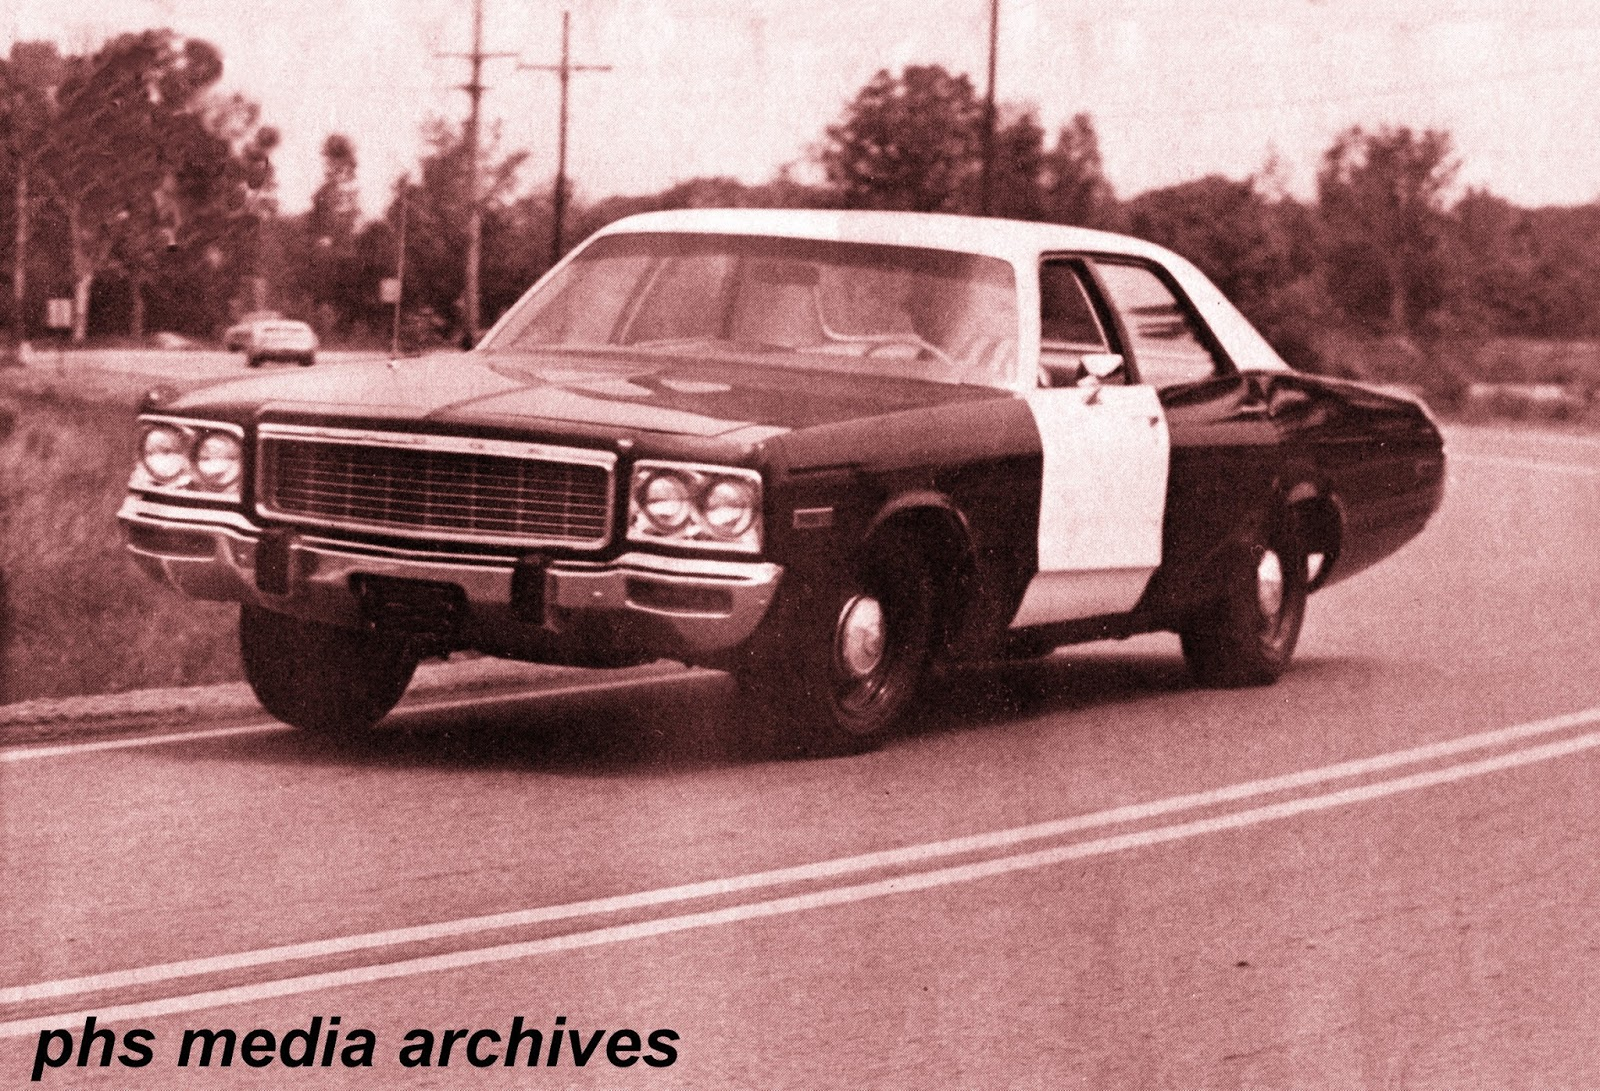 Cop Cars 1973 4 Dodge Polara Phscollectorcarworld 1964 Police Car The Was One Of American Law Enforcement Agencies Favorite They Were Preffered Over All New Ltd Due To Superior Brakes